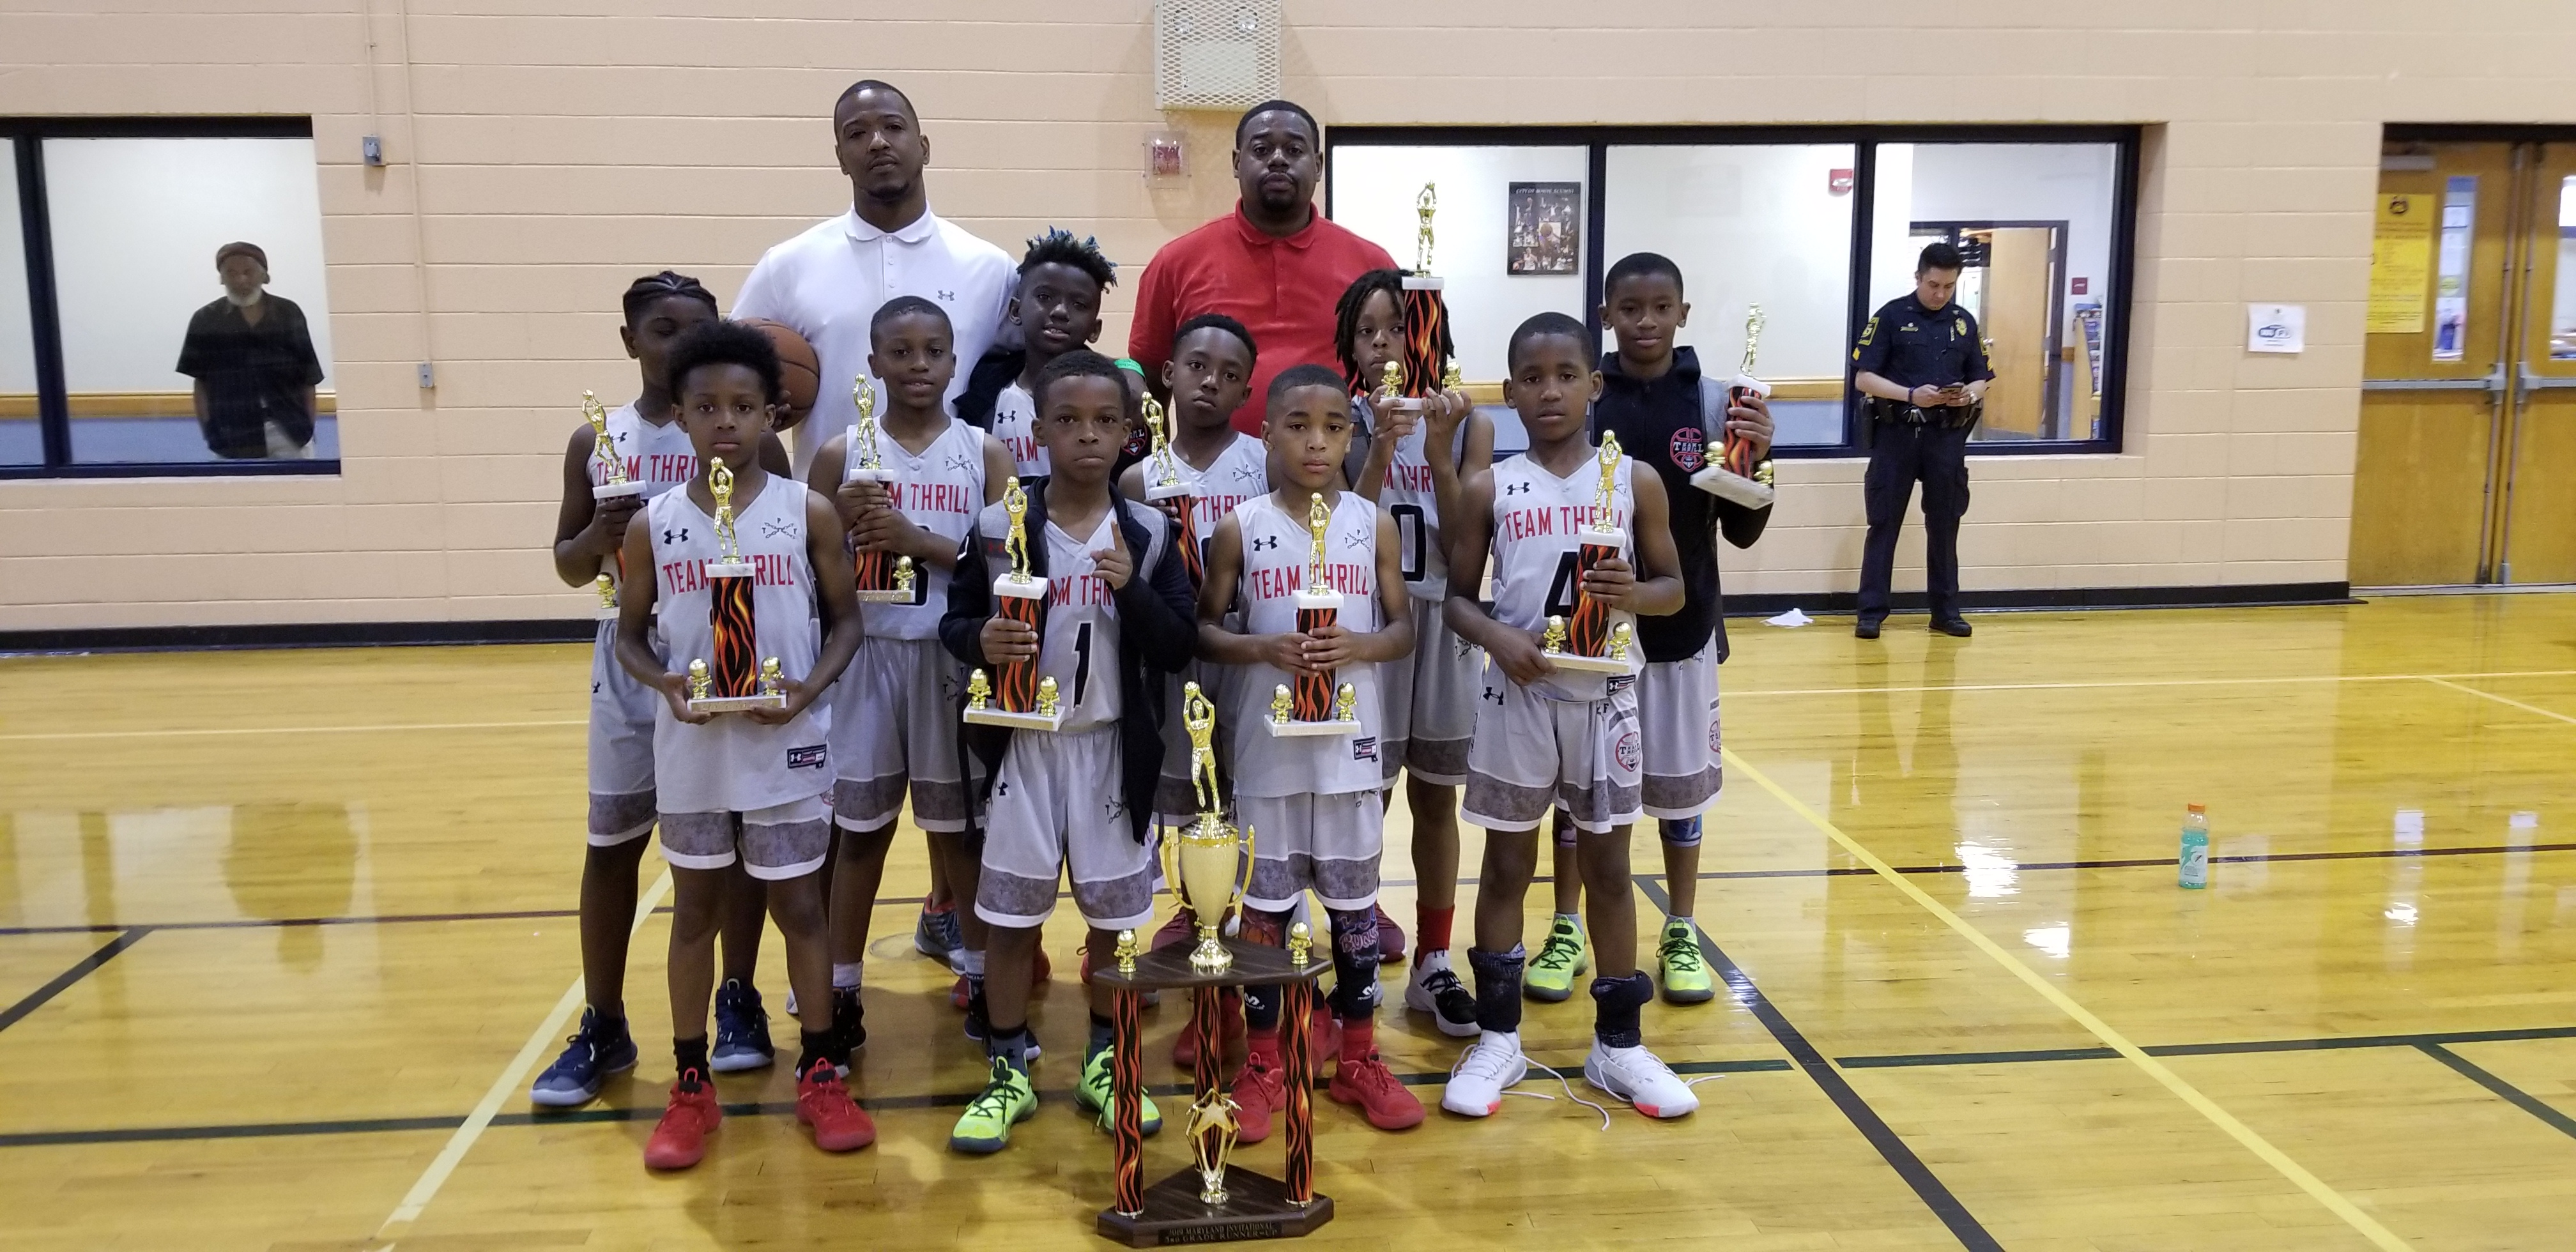 Team-Thrill-MIT-3rd-Grade-Gold-Runner-Up-2019